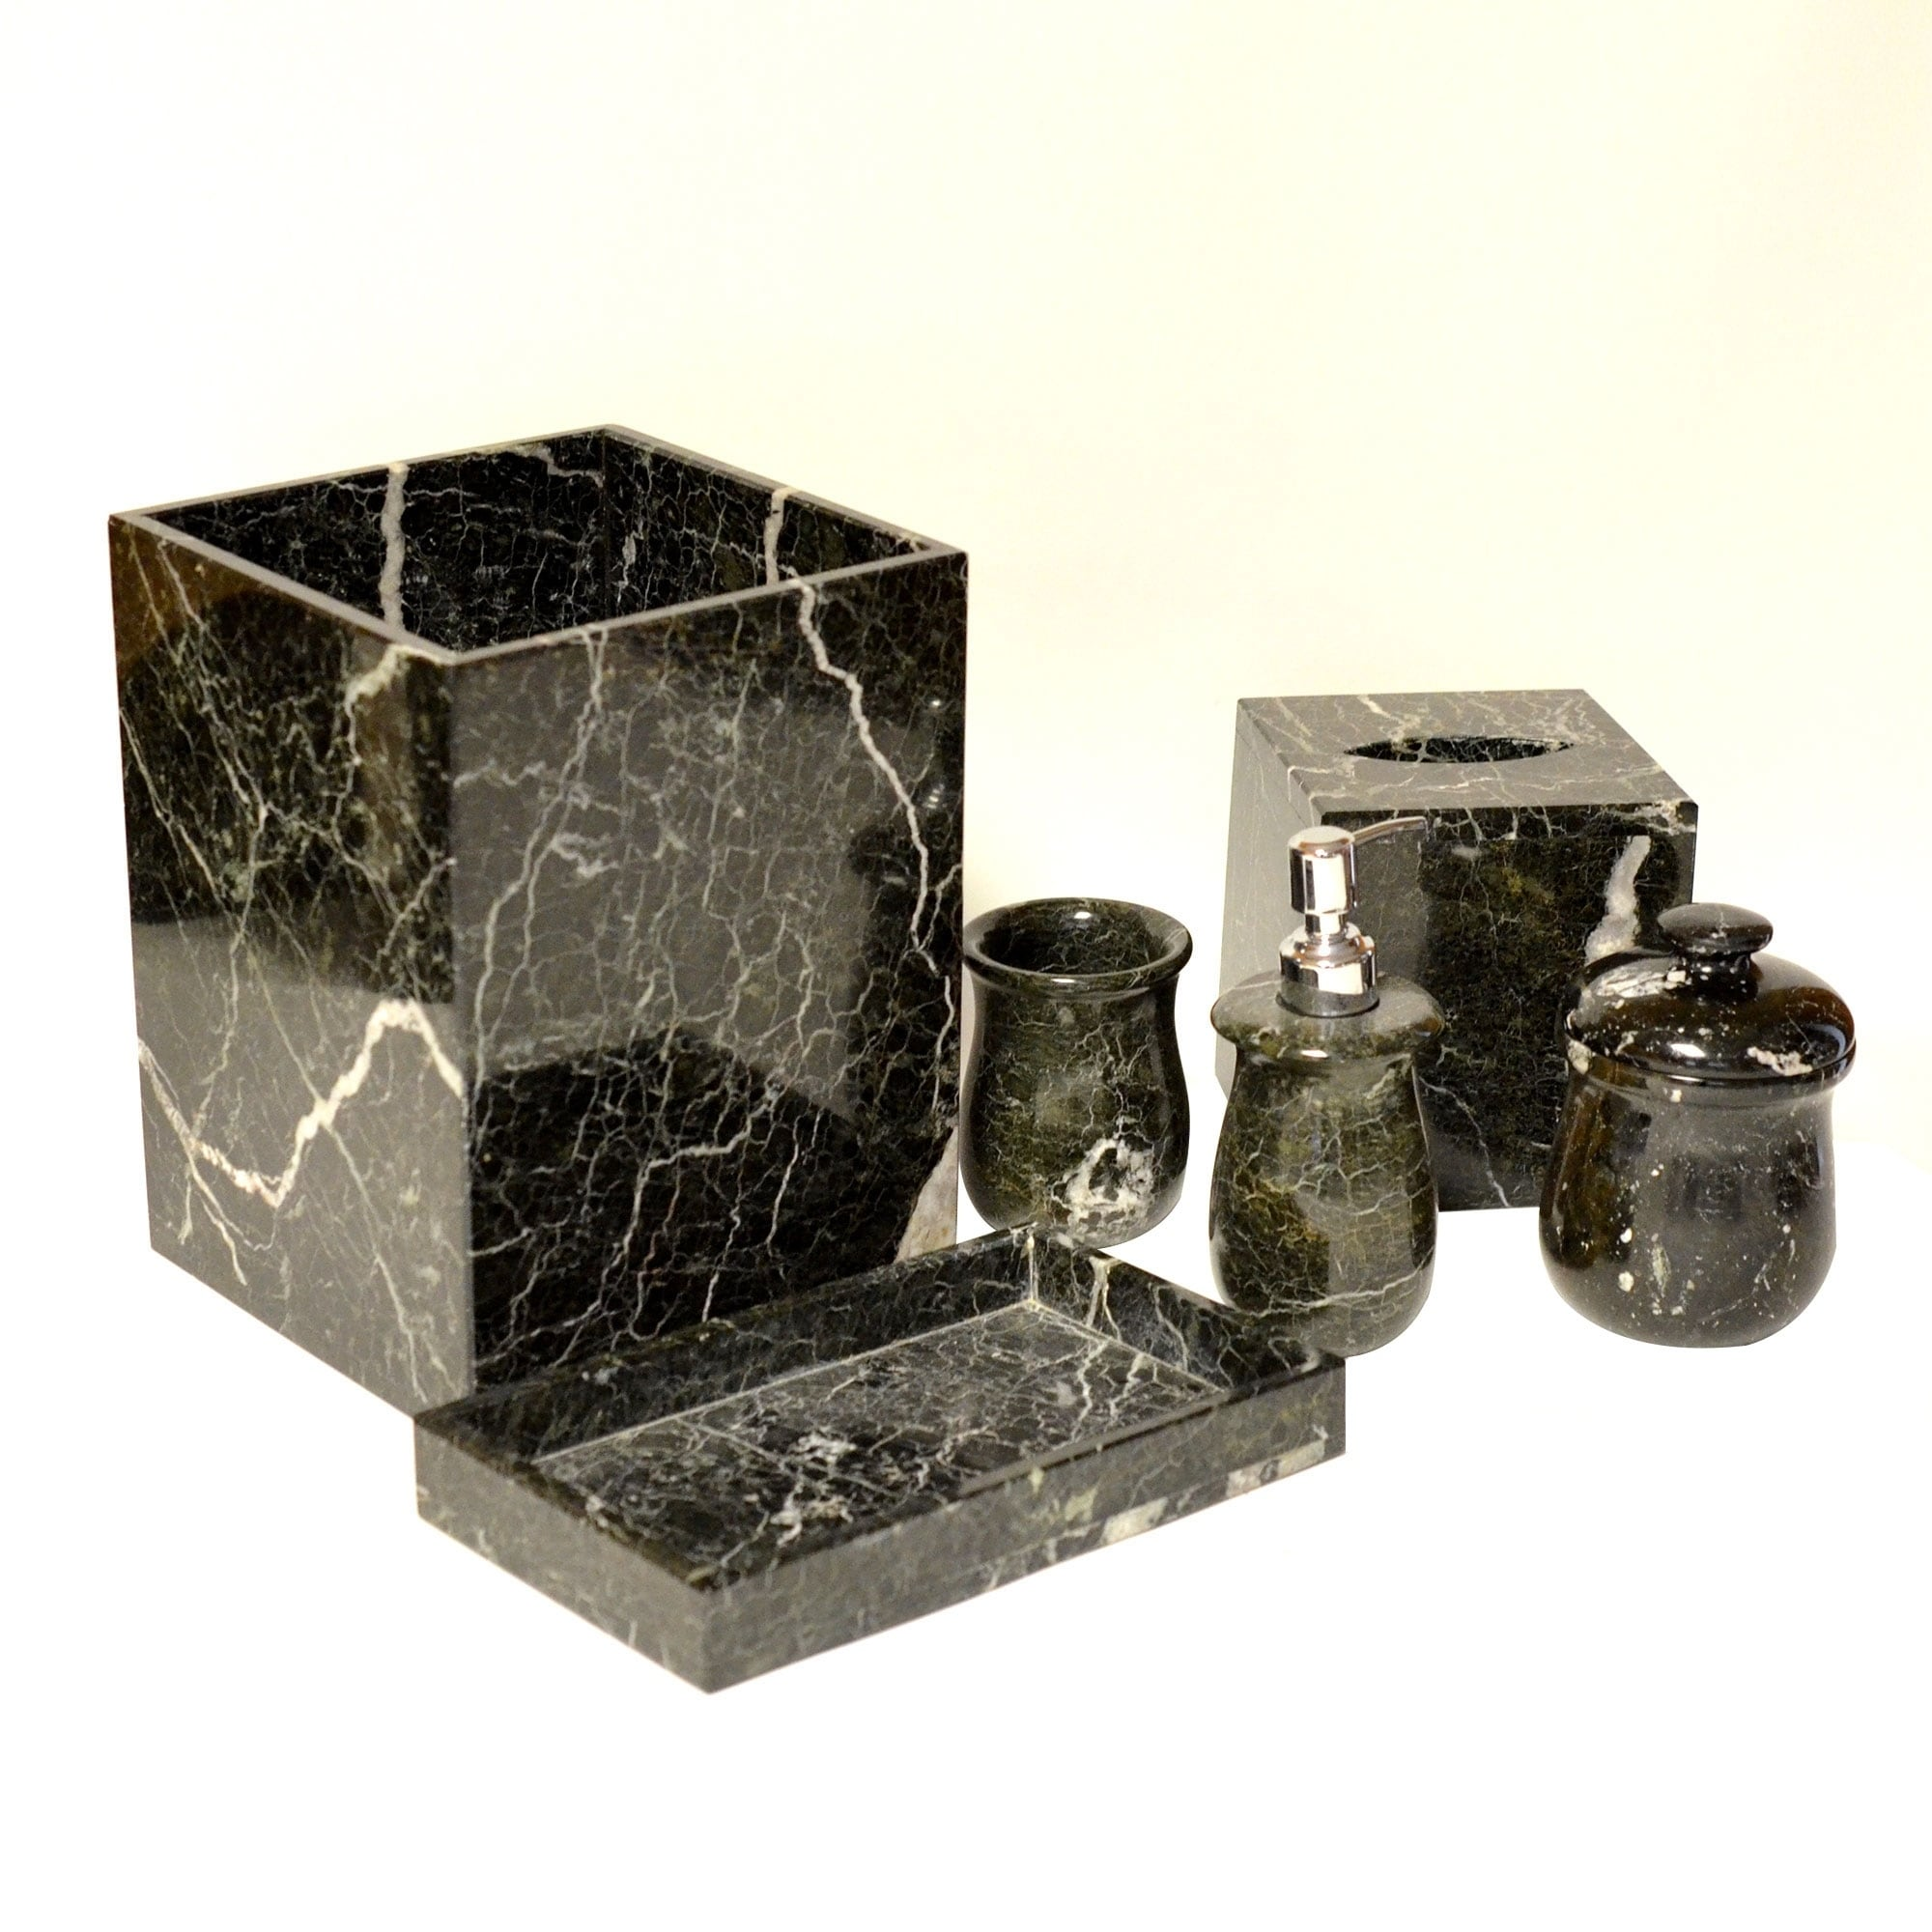 Polished Marble 7 Piece Bath Set Black Zebra Shower And Bathroom Accessory Overstock 17679415